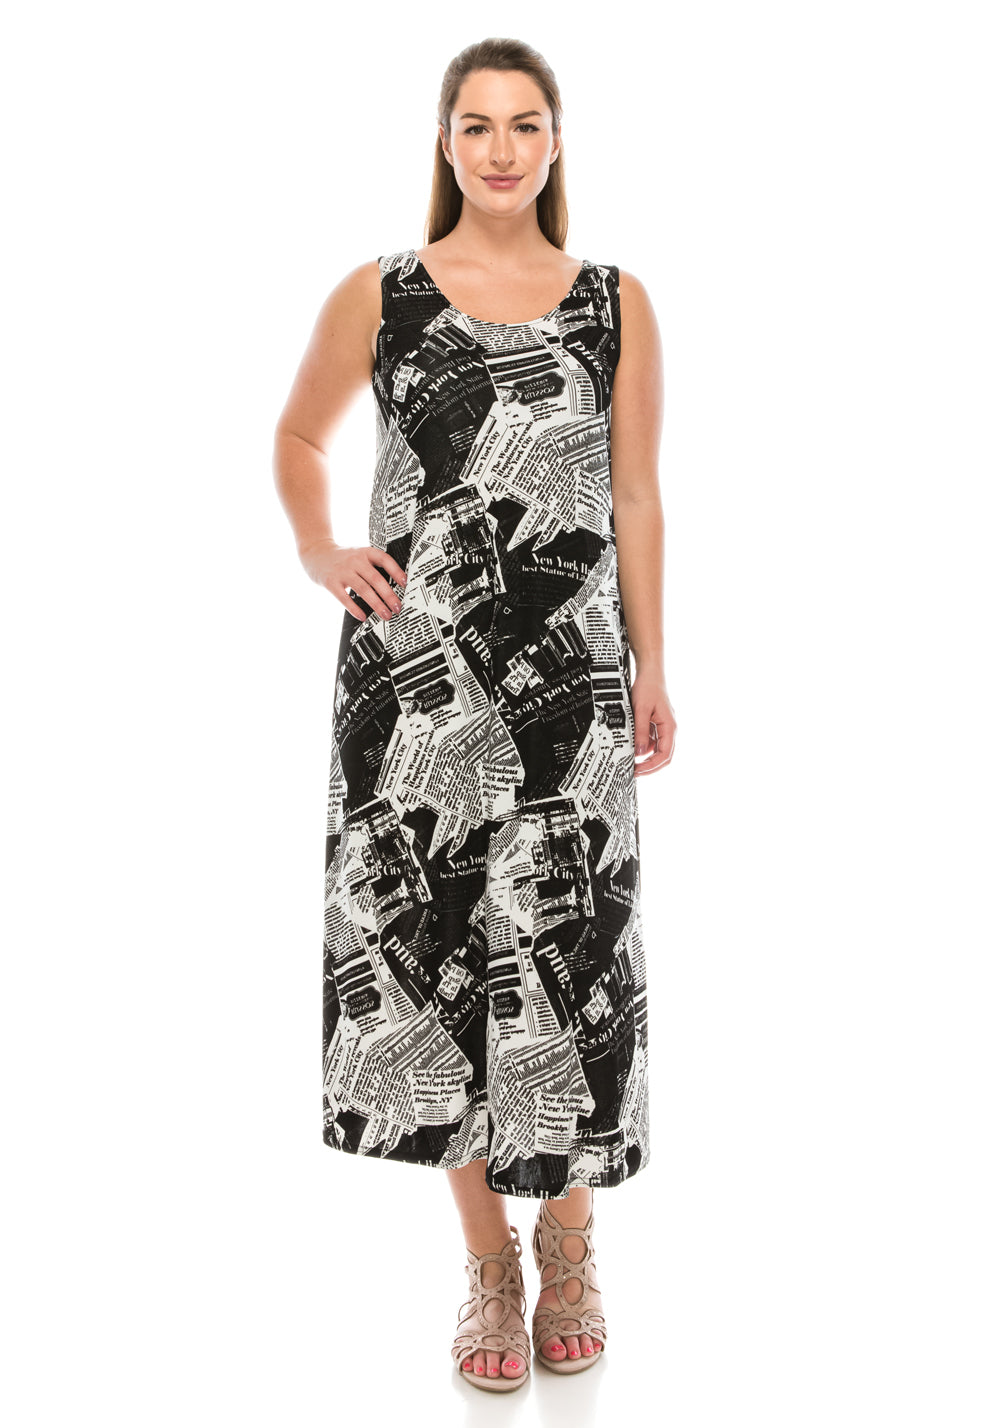 Jostar Women's Stretchy Tank Long Dress Sleeveless Plus Print, 700BN-TXP-W120 - Jostar Online